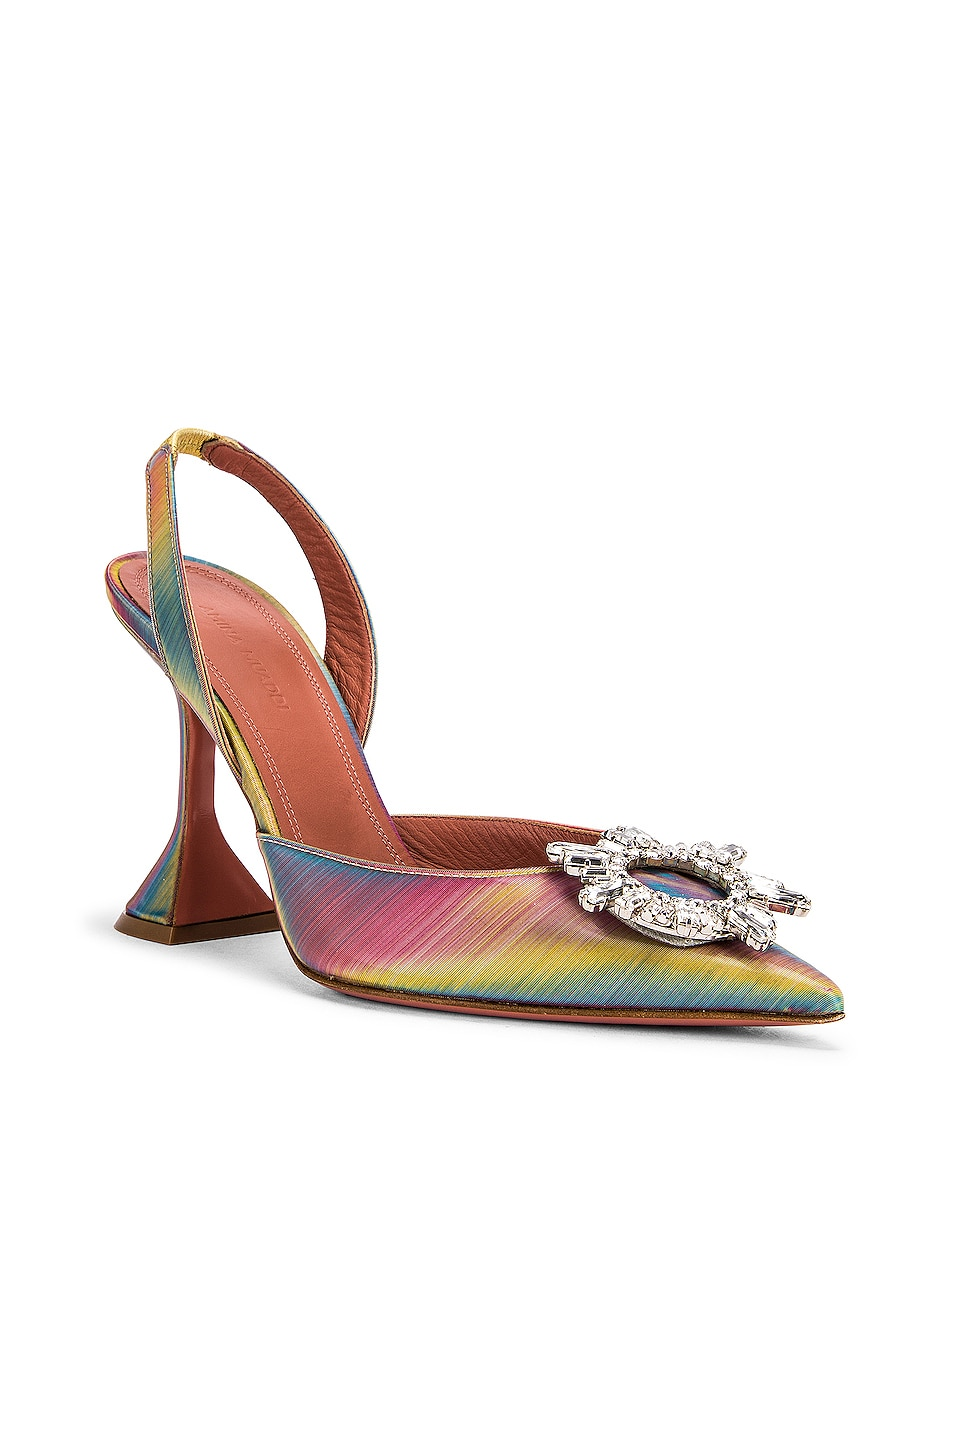 Image 2 of AMINA MUADDI Begum Sling Heel in Shadow Leather Multicolor